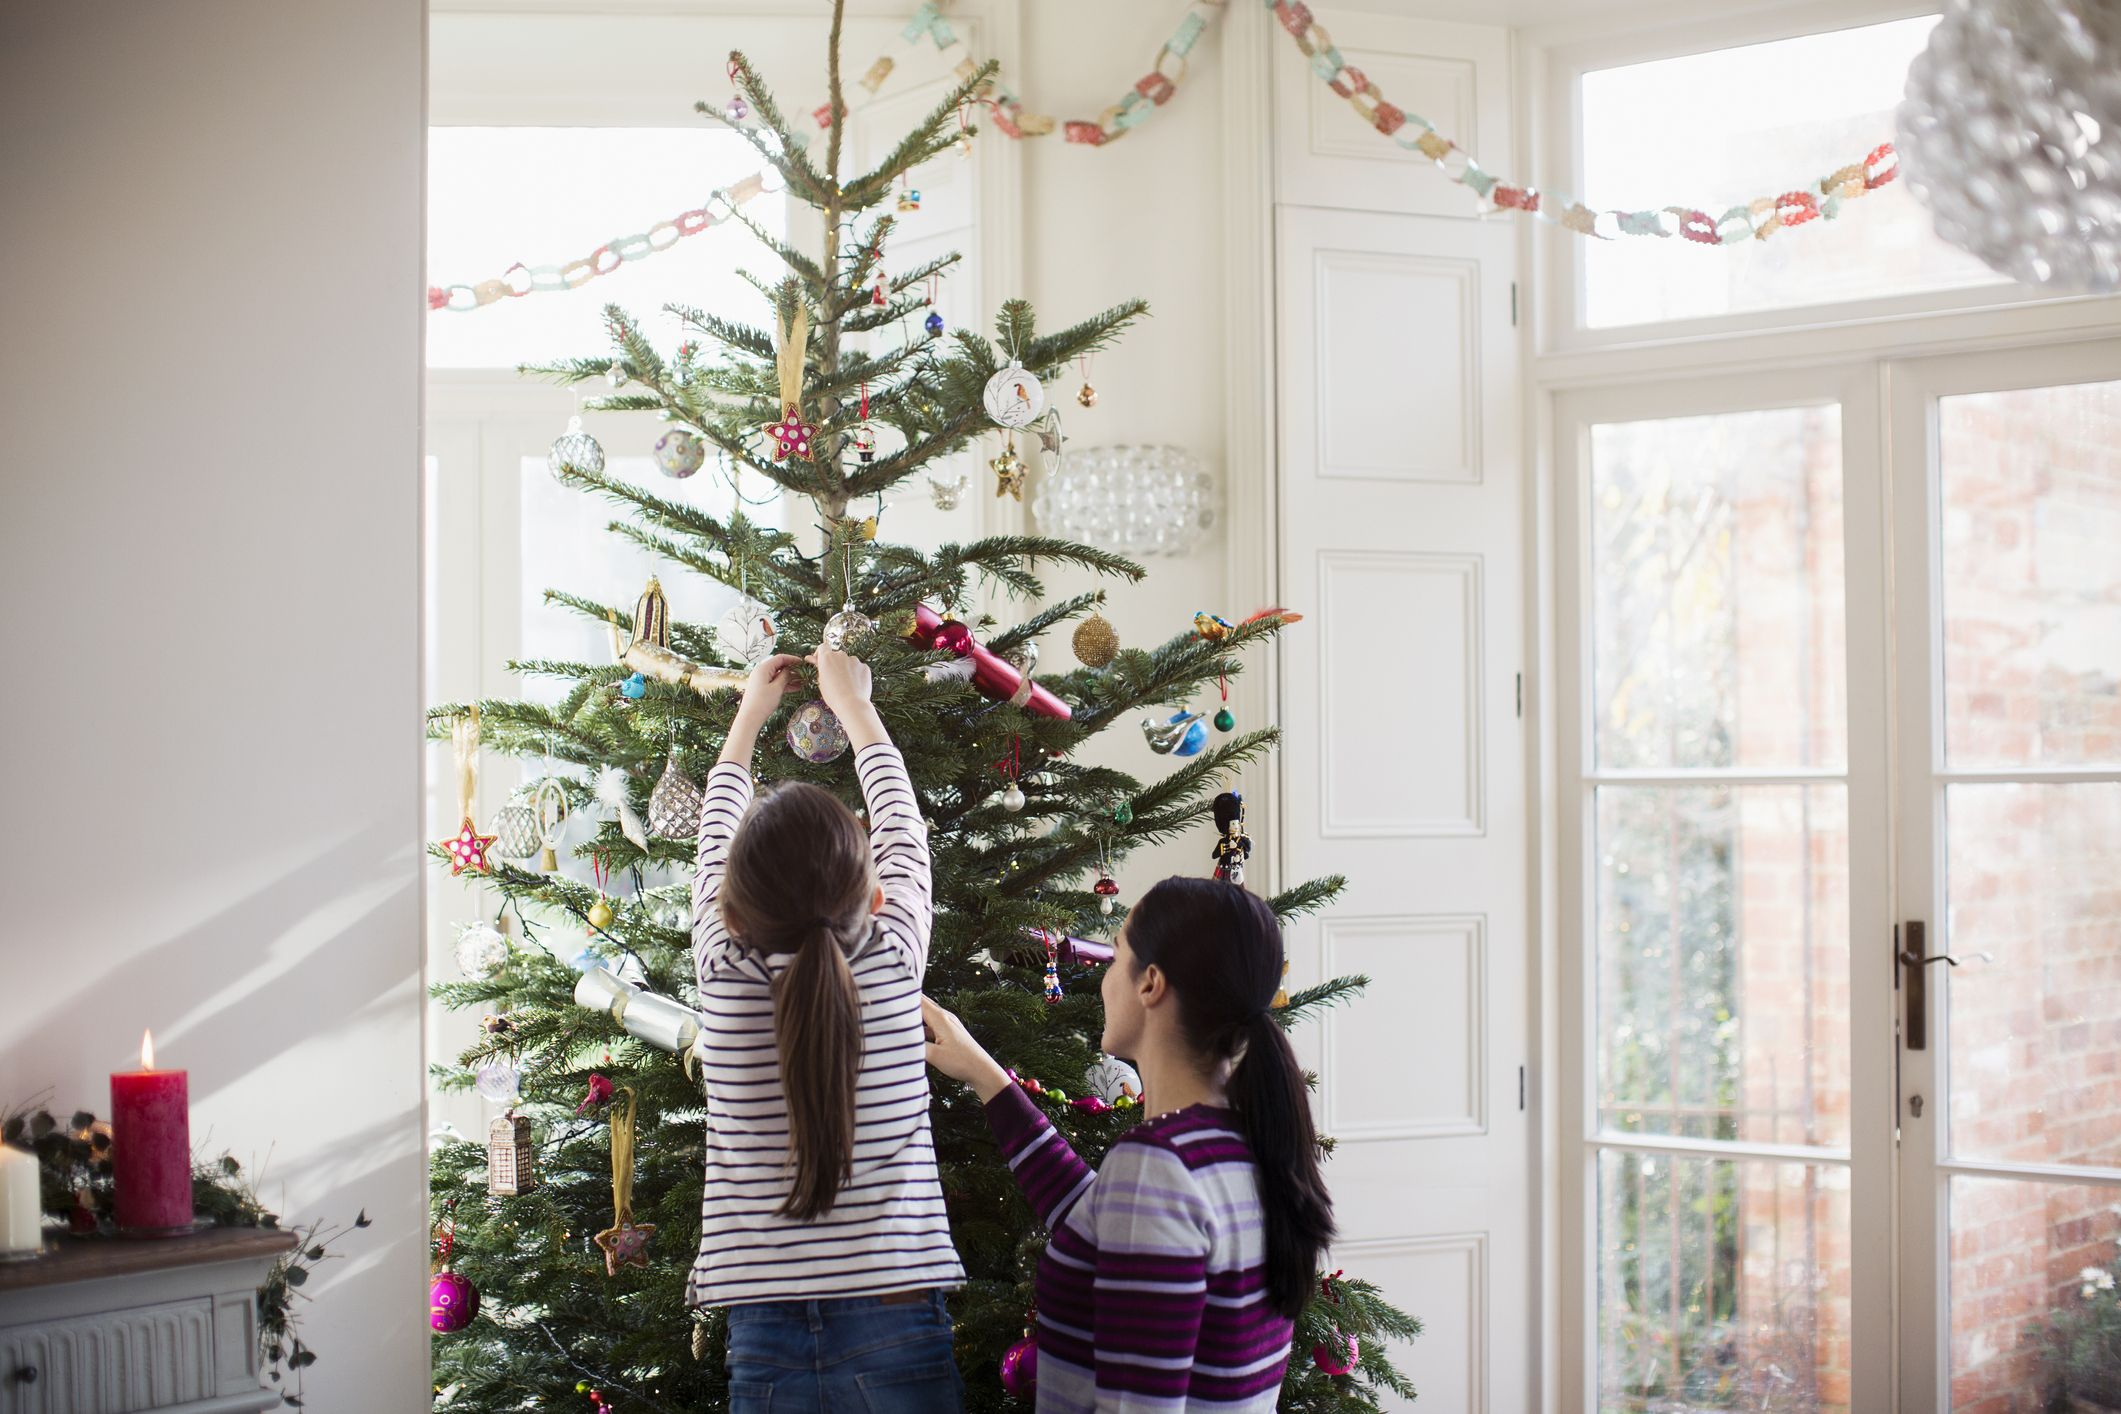 12 jobs we prioritise to get our home ready for Christmas